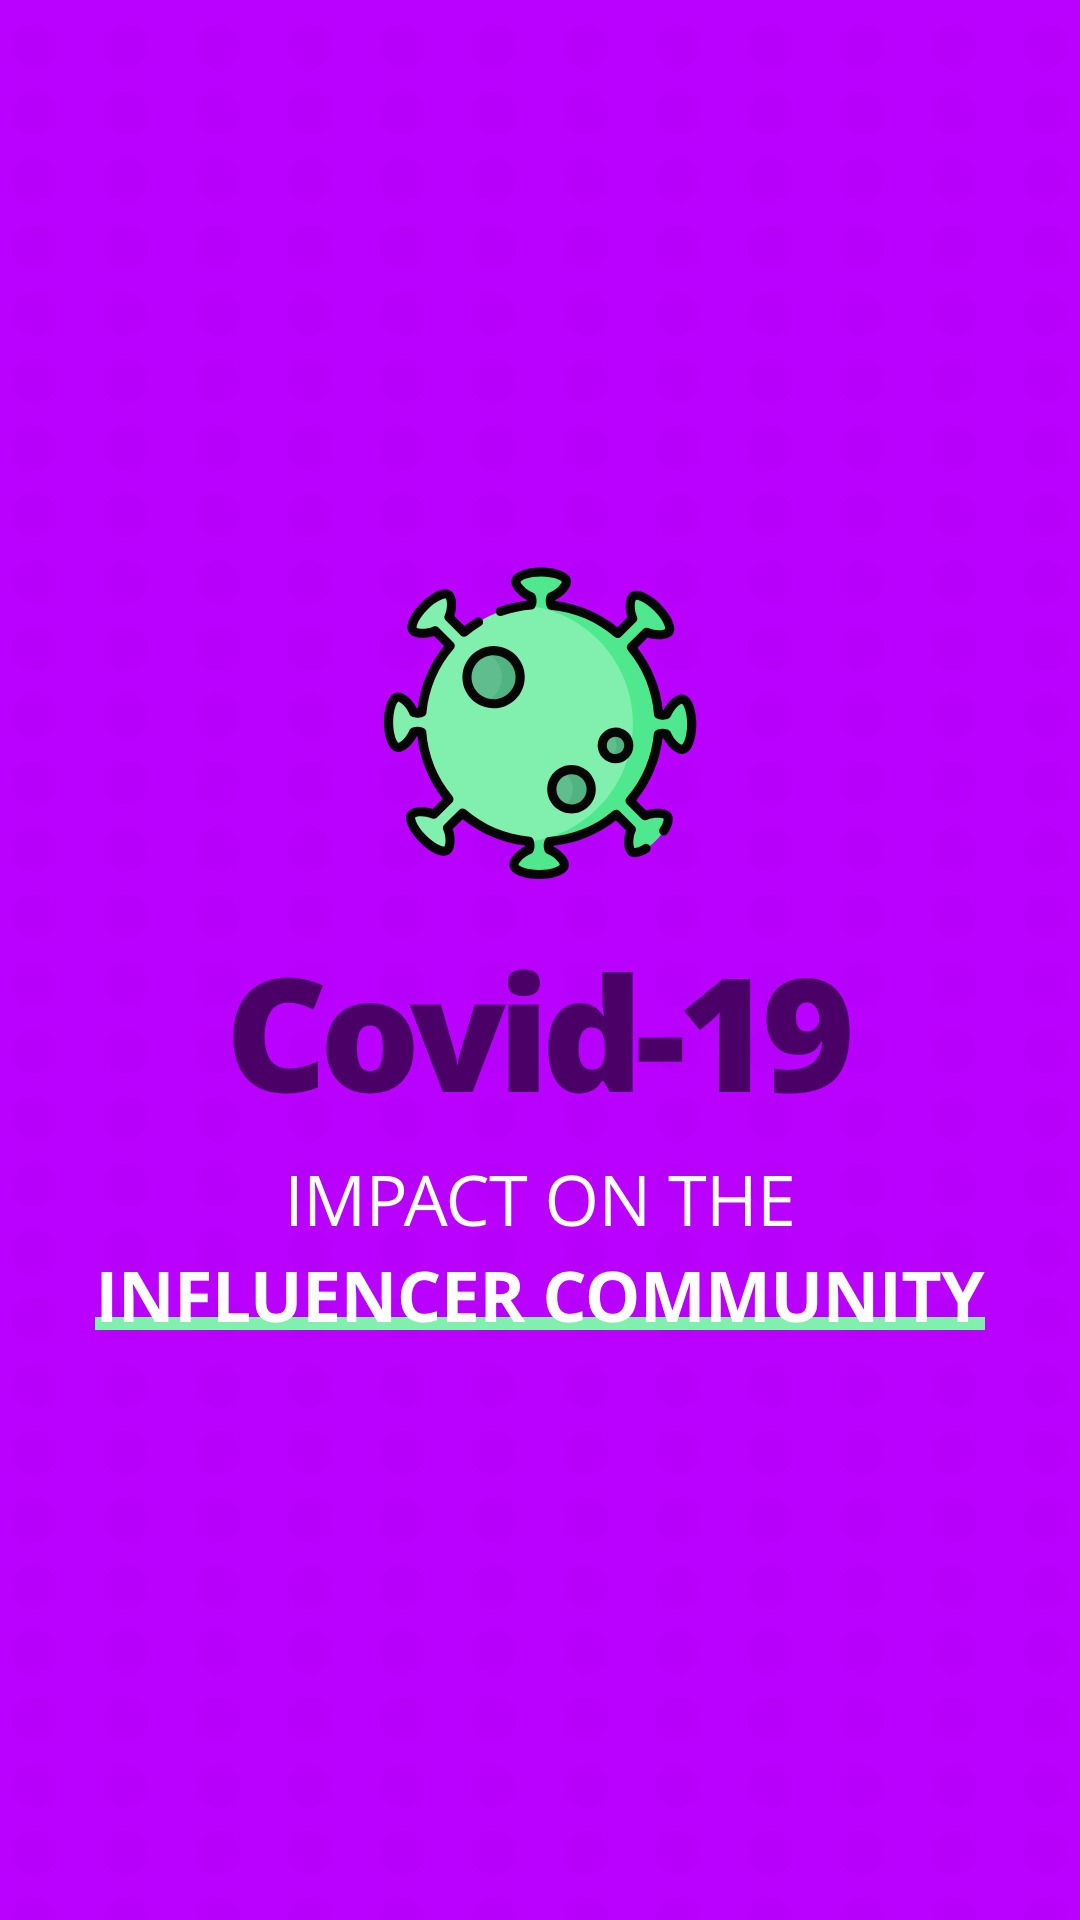 Covid - 19: There's some good news and bad news for the influencer community image